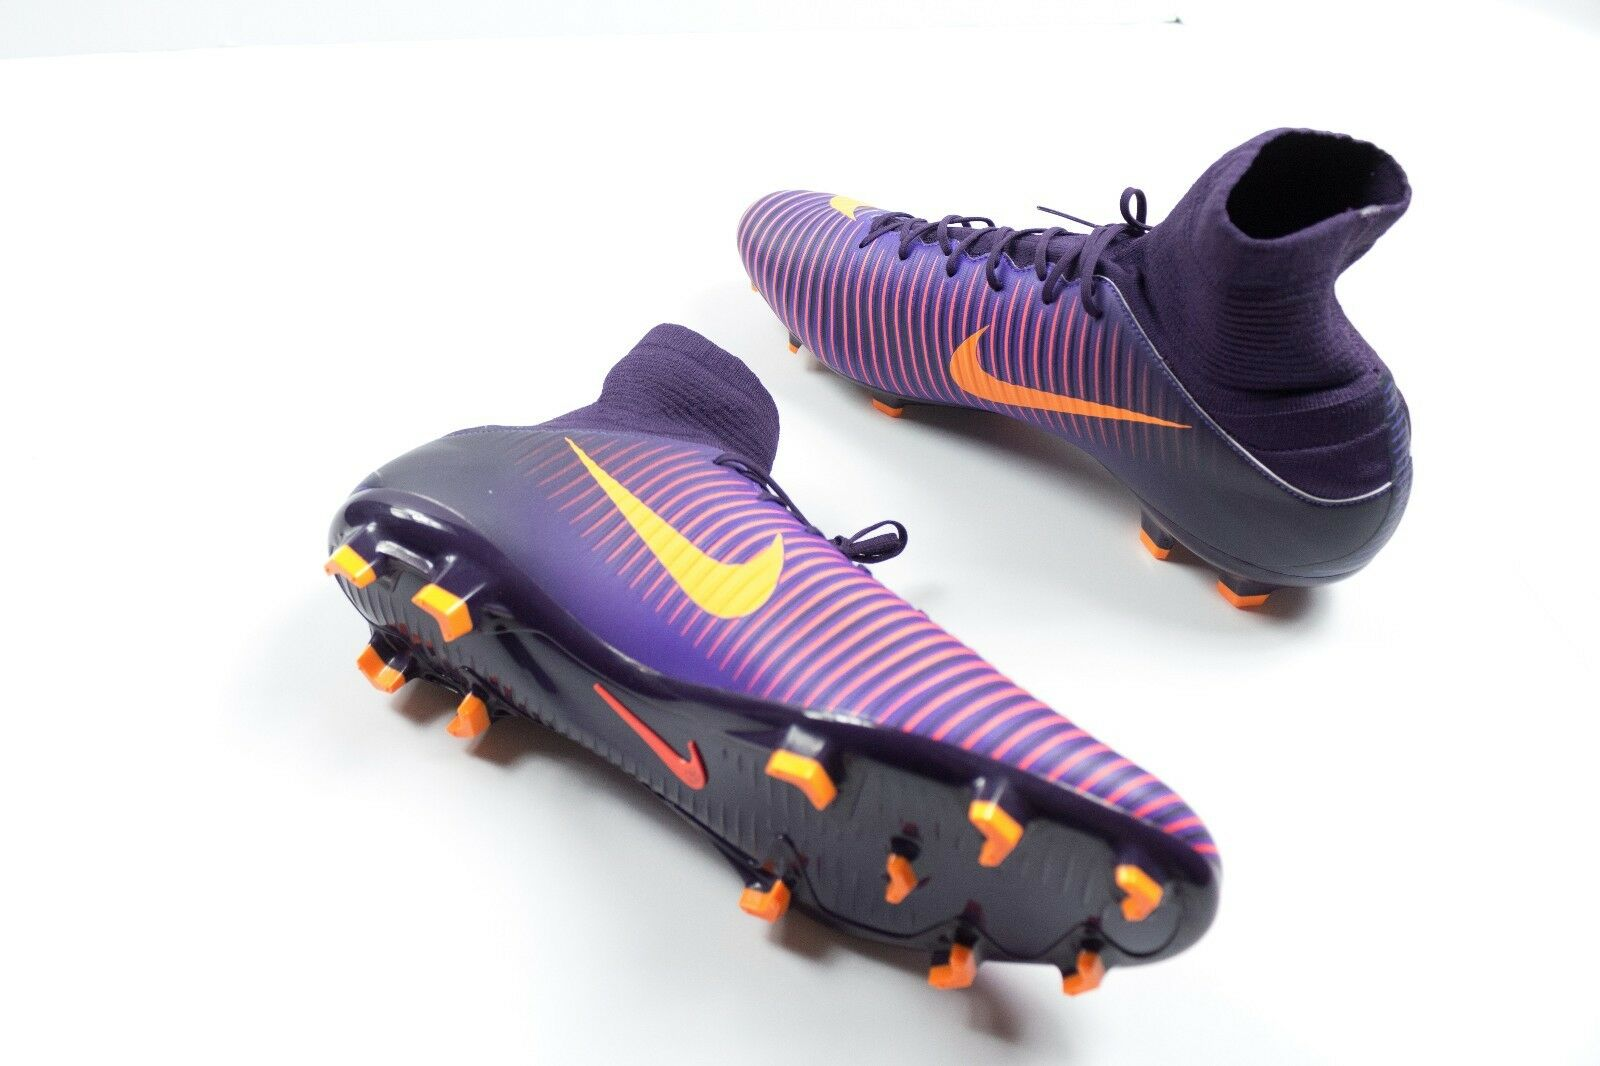 NIKE MERCURIAL VELOCE III DF FG SOCCER CLEAT PURPLE CITRUS MEN'S 13 [831961-585]